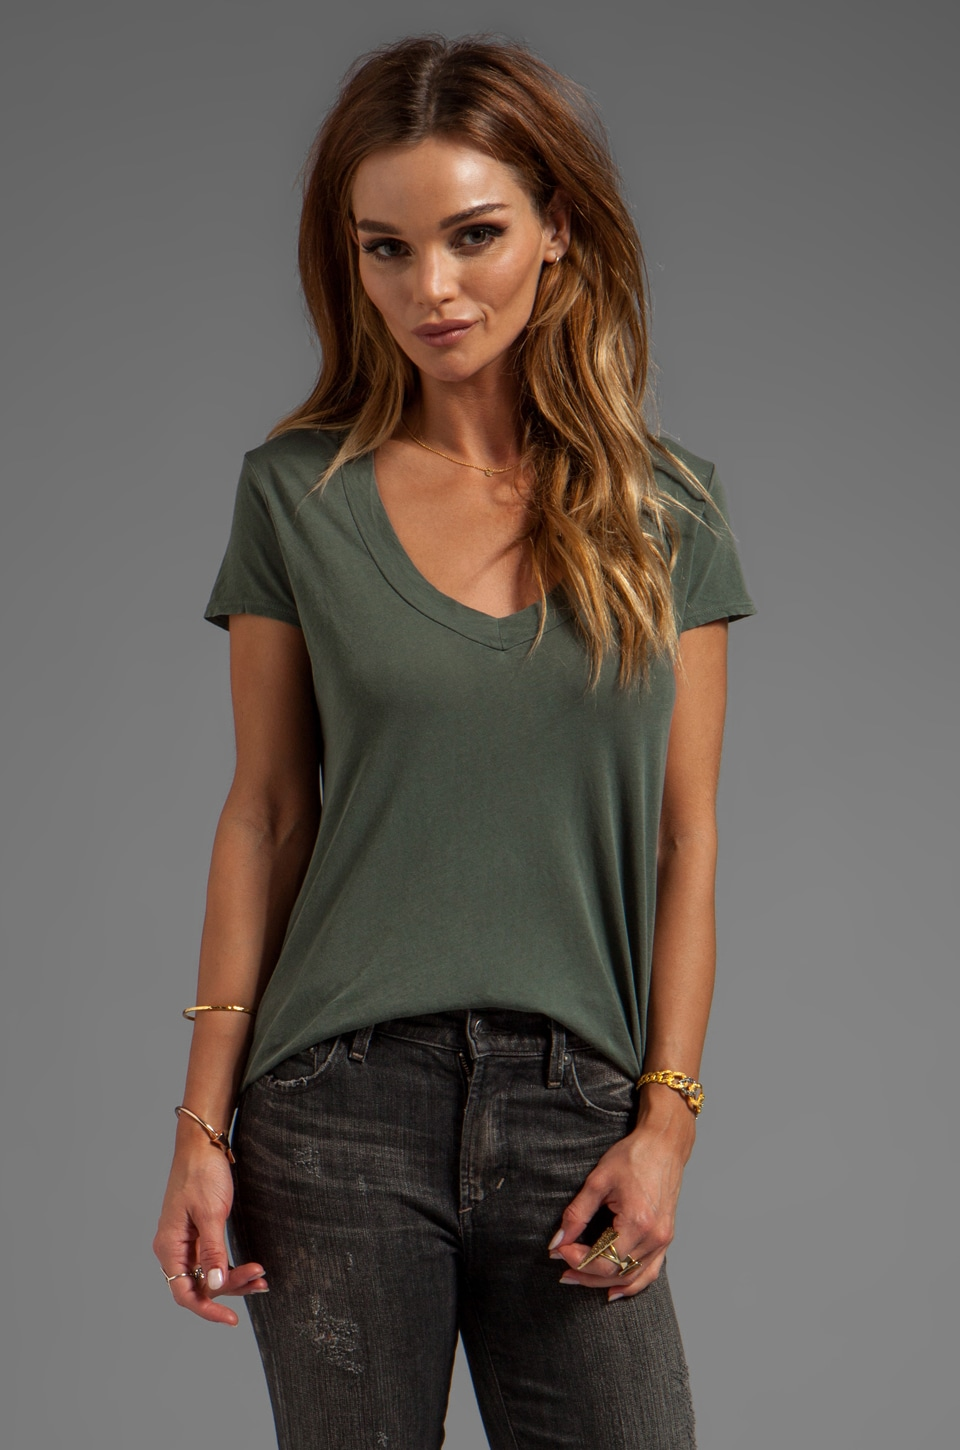 James Perse Relaxed Casual V-Neck in Jungle